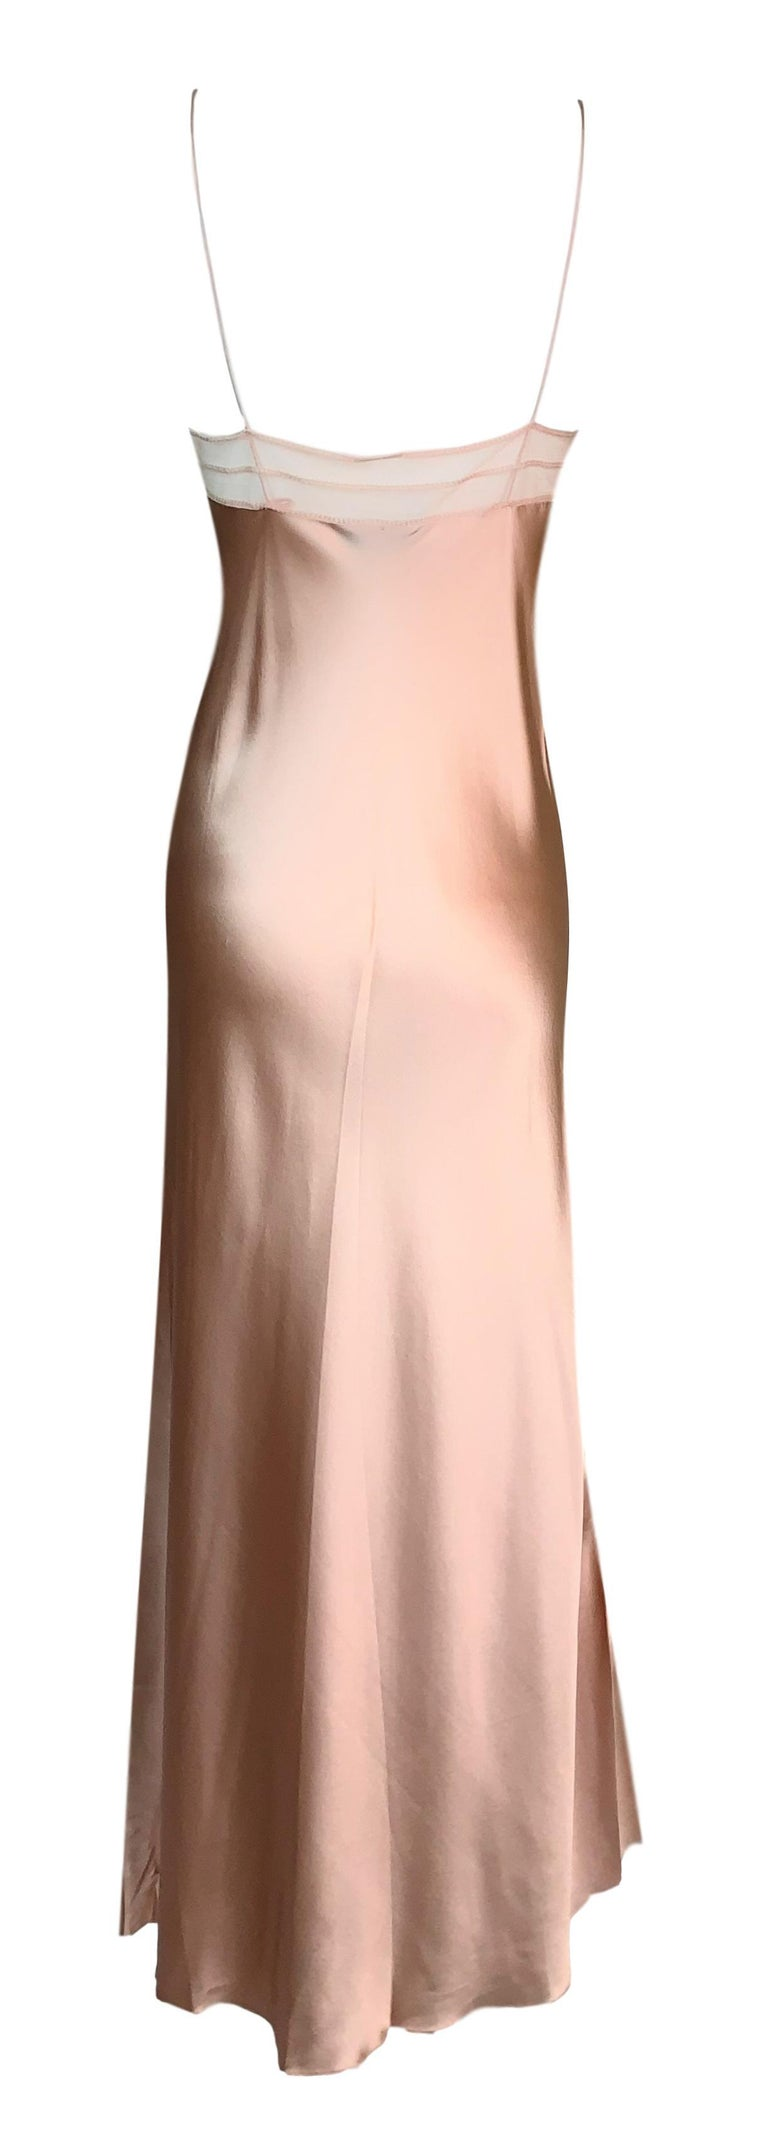 DESIGNER: S/S 2000 Christian Dior by John Galliano  Please contact for more information and/or photos.  CONDITION: Good- light wear but no holes or stains.   FABRIC: Silk   COUNTRY MADE: France  SIZE: 36  MEASUREMENTS; provided as a courtesy only-